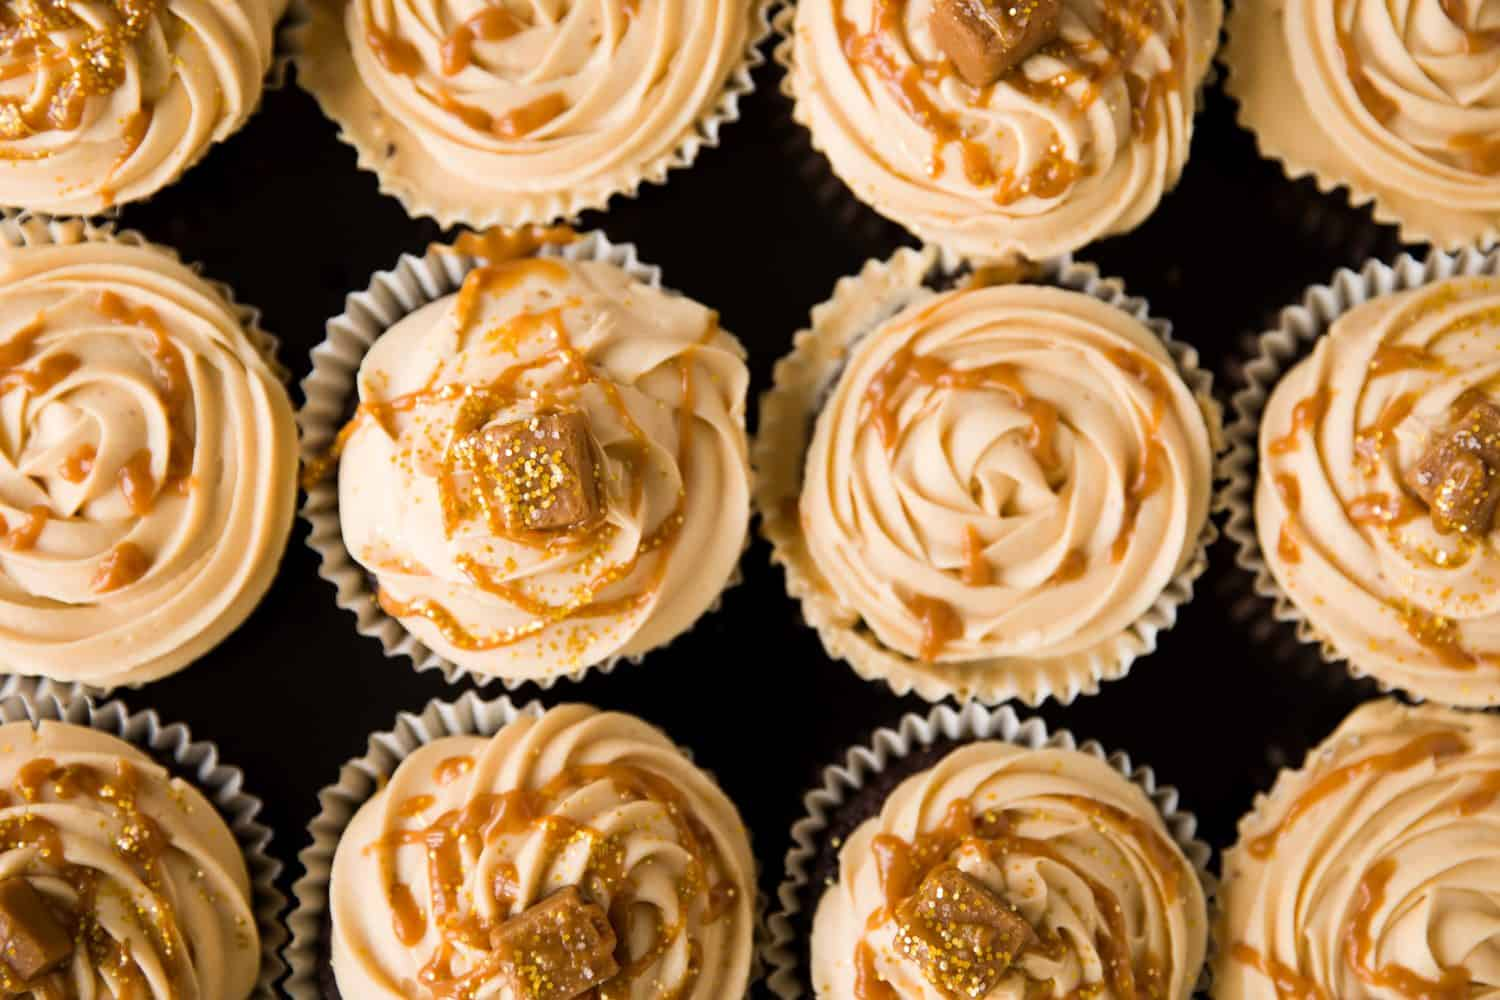 Overhead view of 12 cupcakes in rows of three.